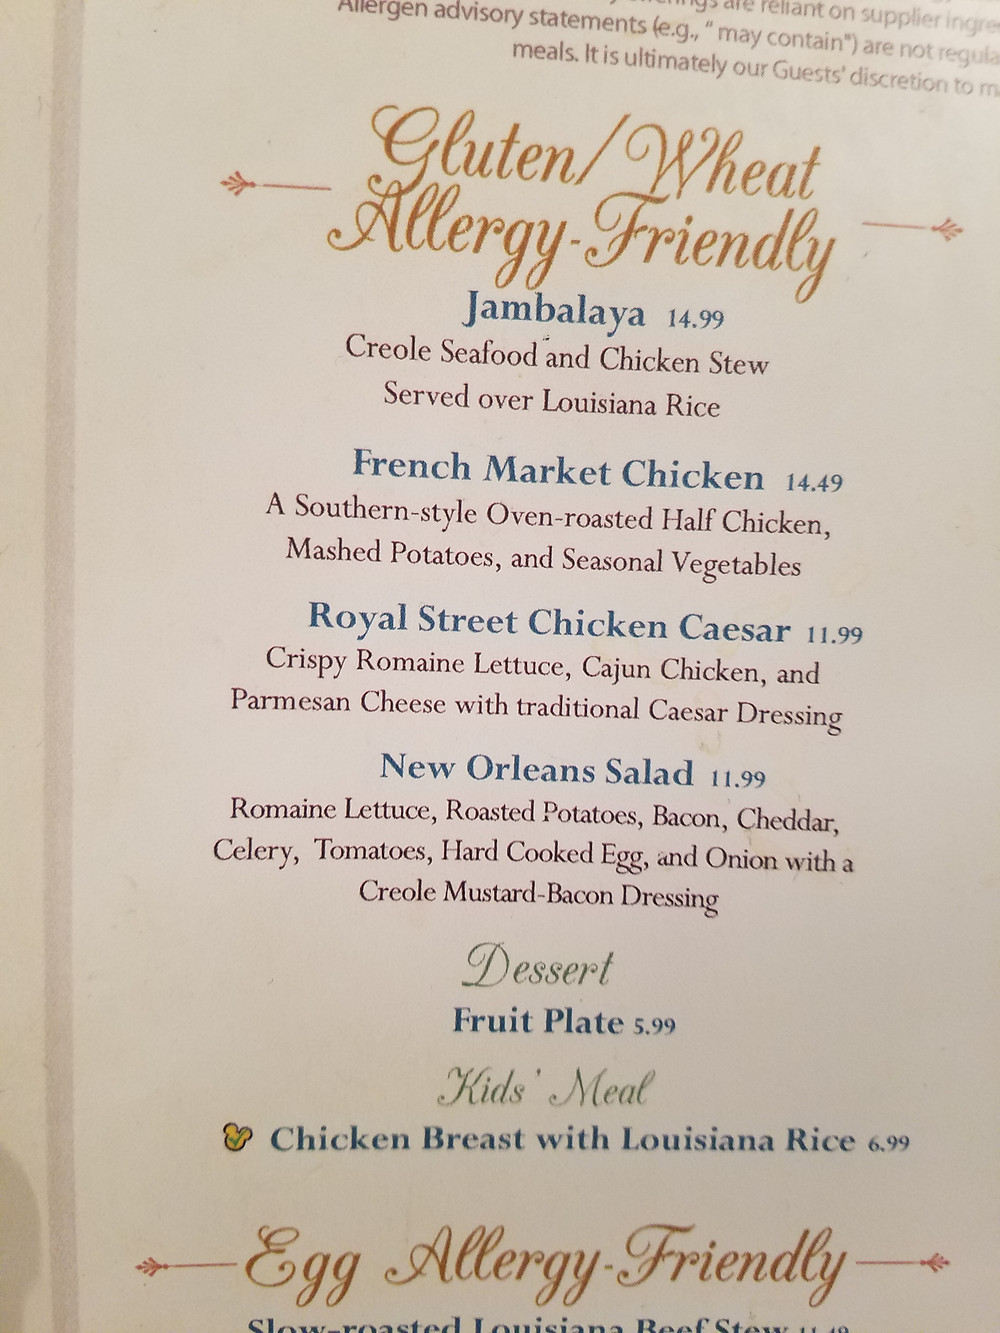 The French Market Allergy-friendly menu page 2